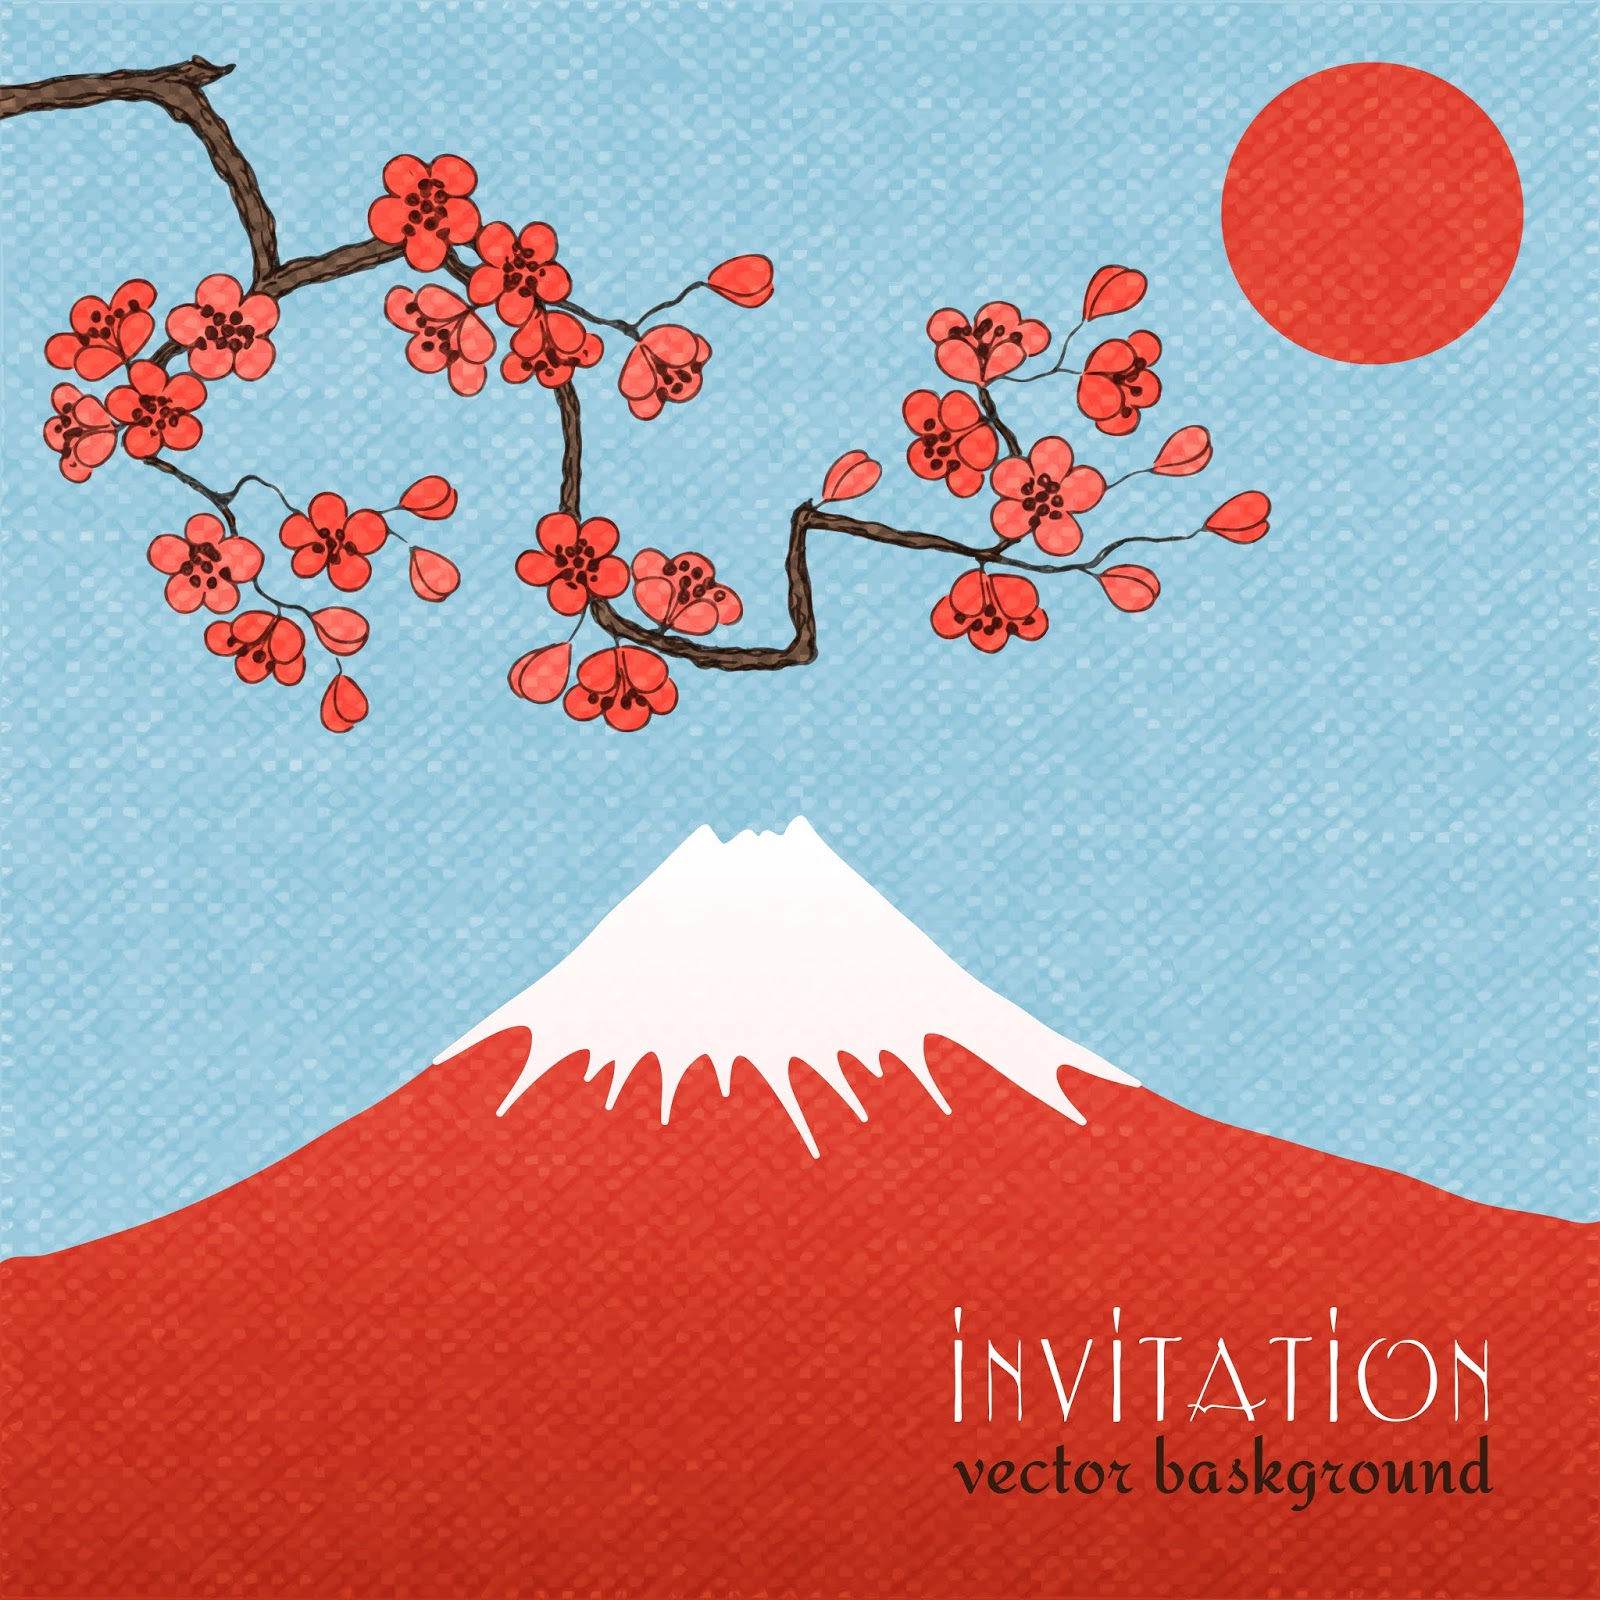 Sakura Invitation Card Background Poster Free Download Vector CDR, AI, EPS and PNG Formats